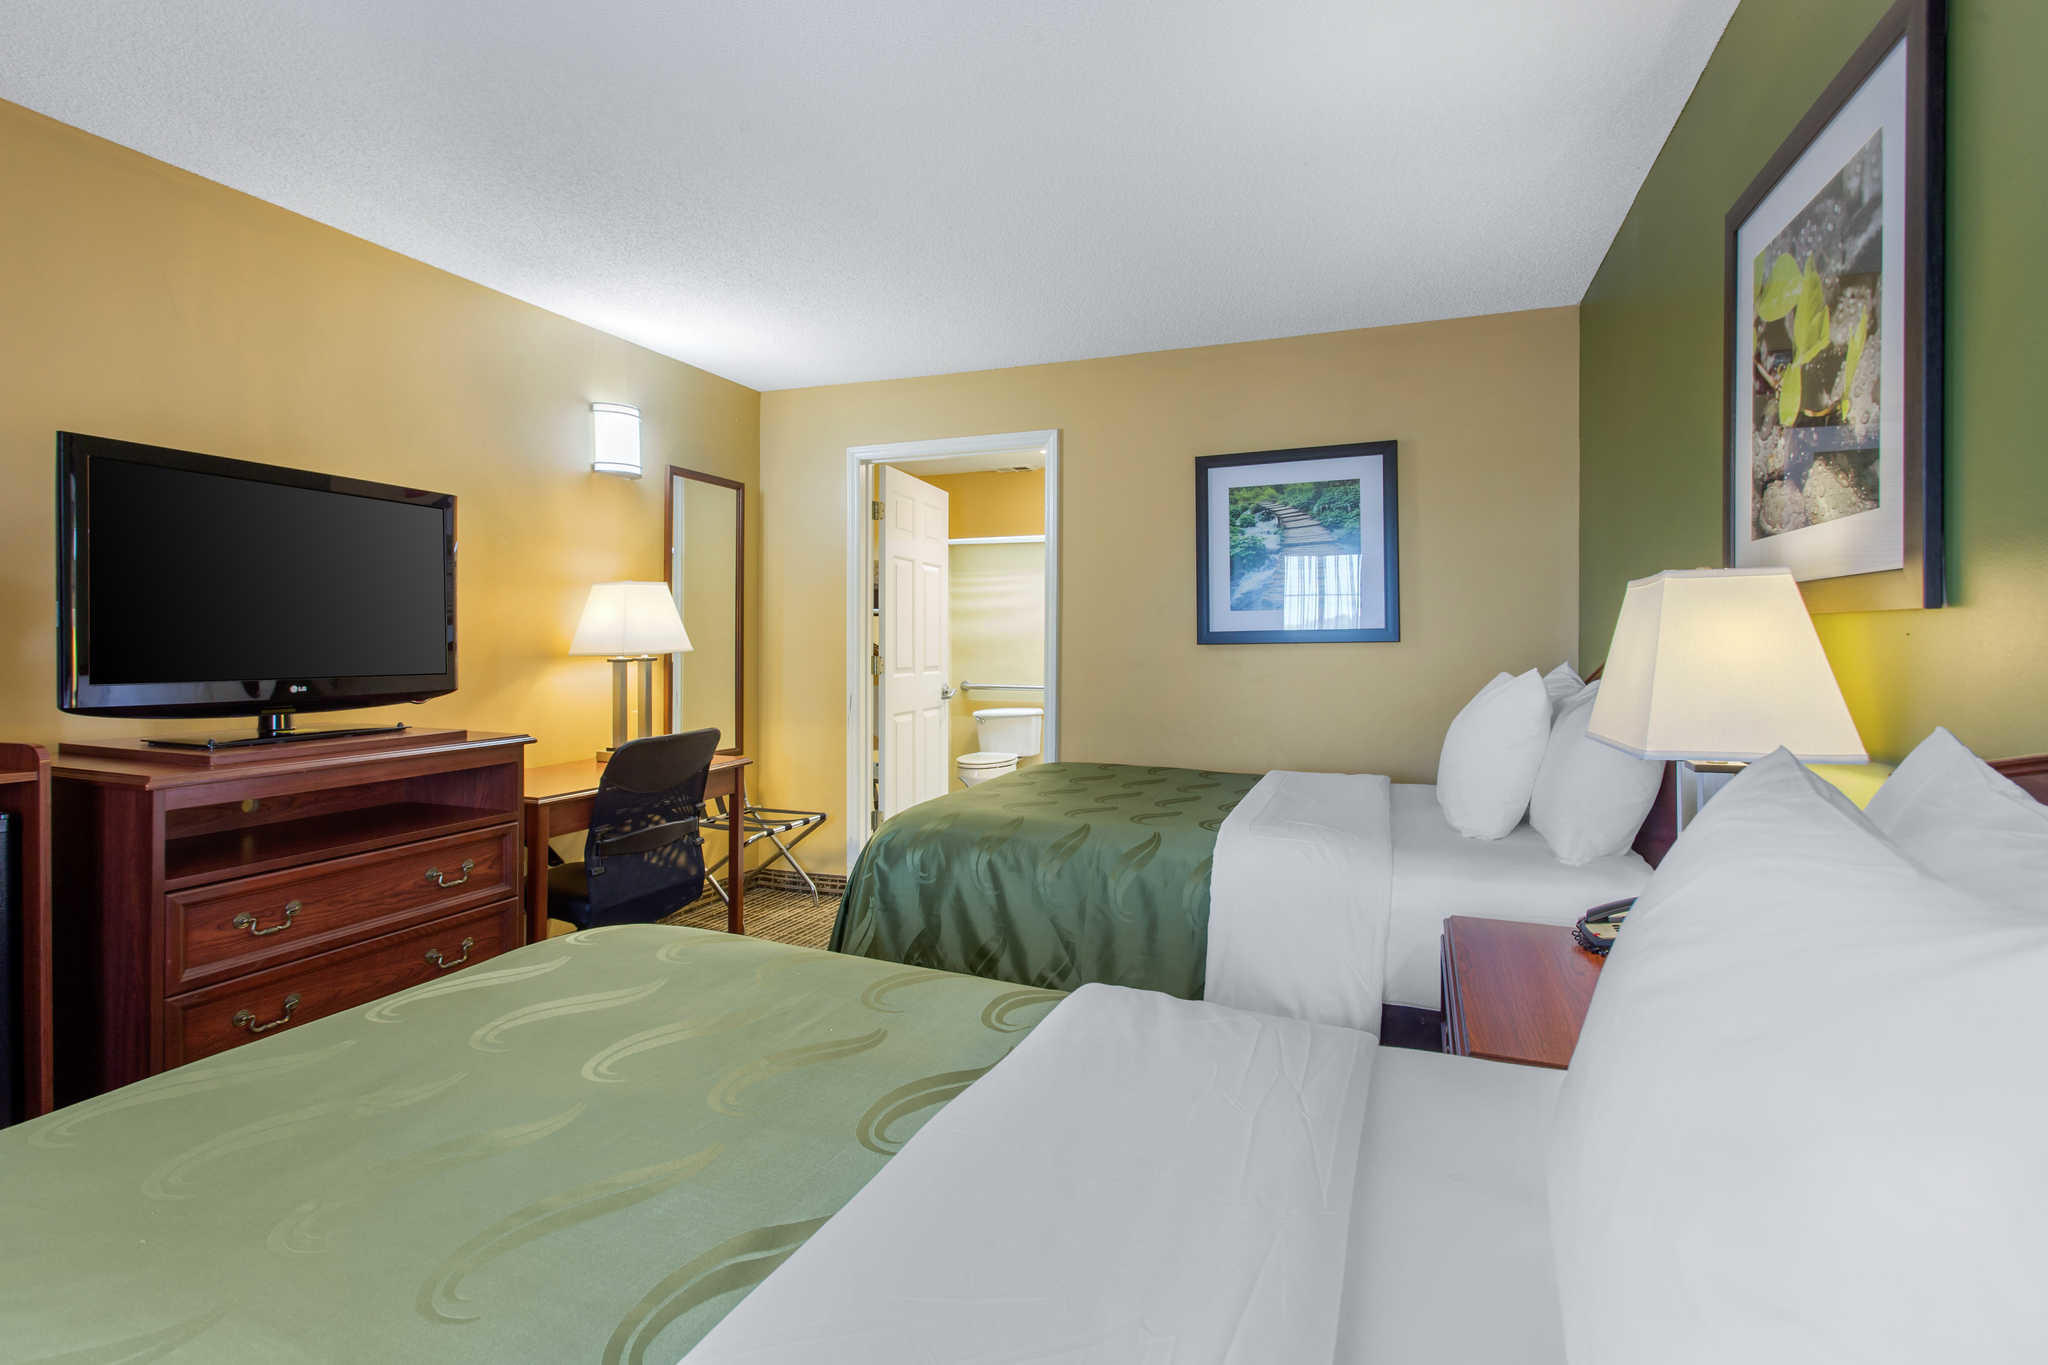 Quality Inn image 9